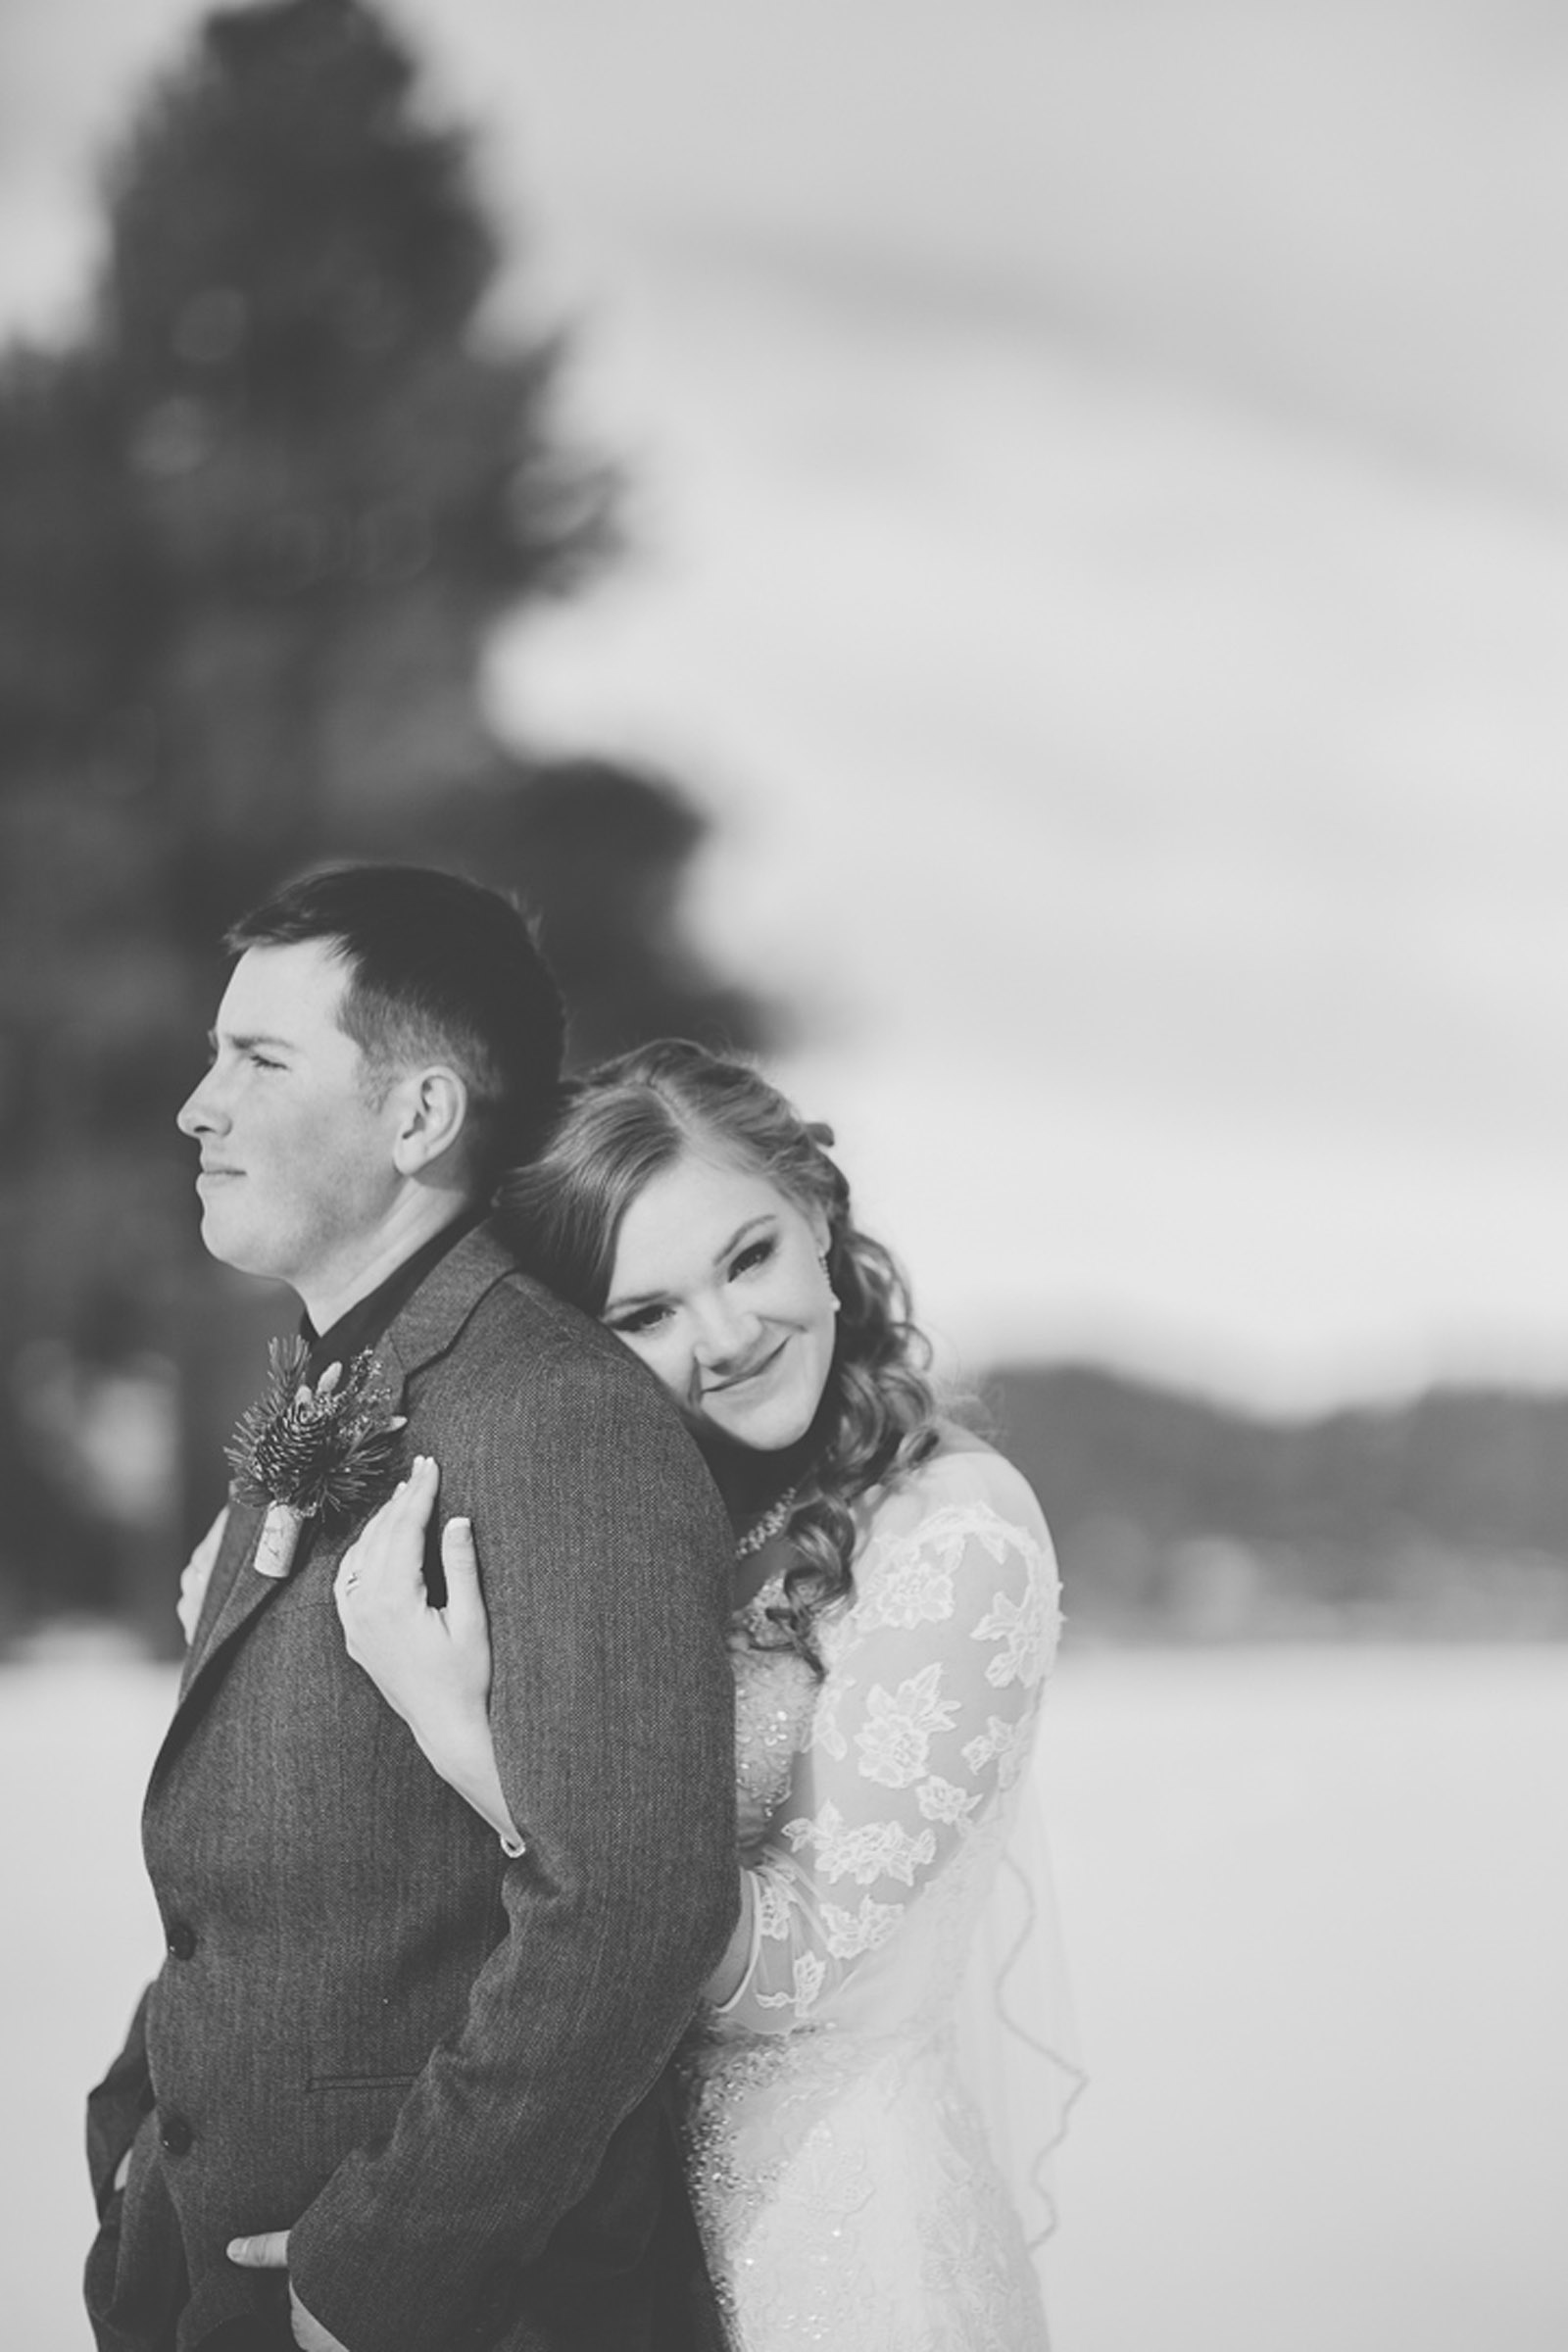 141-wedding-photographer-captures-newlyweds-in-snow-during-a-winter-snow-wedding-in-the-mountains-in-colorado